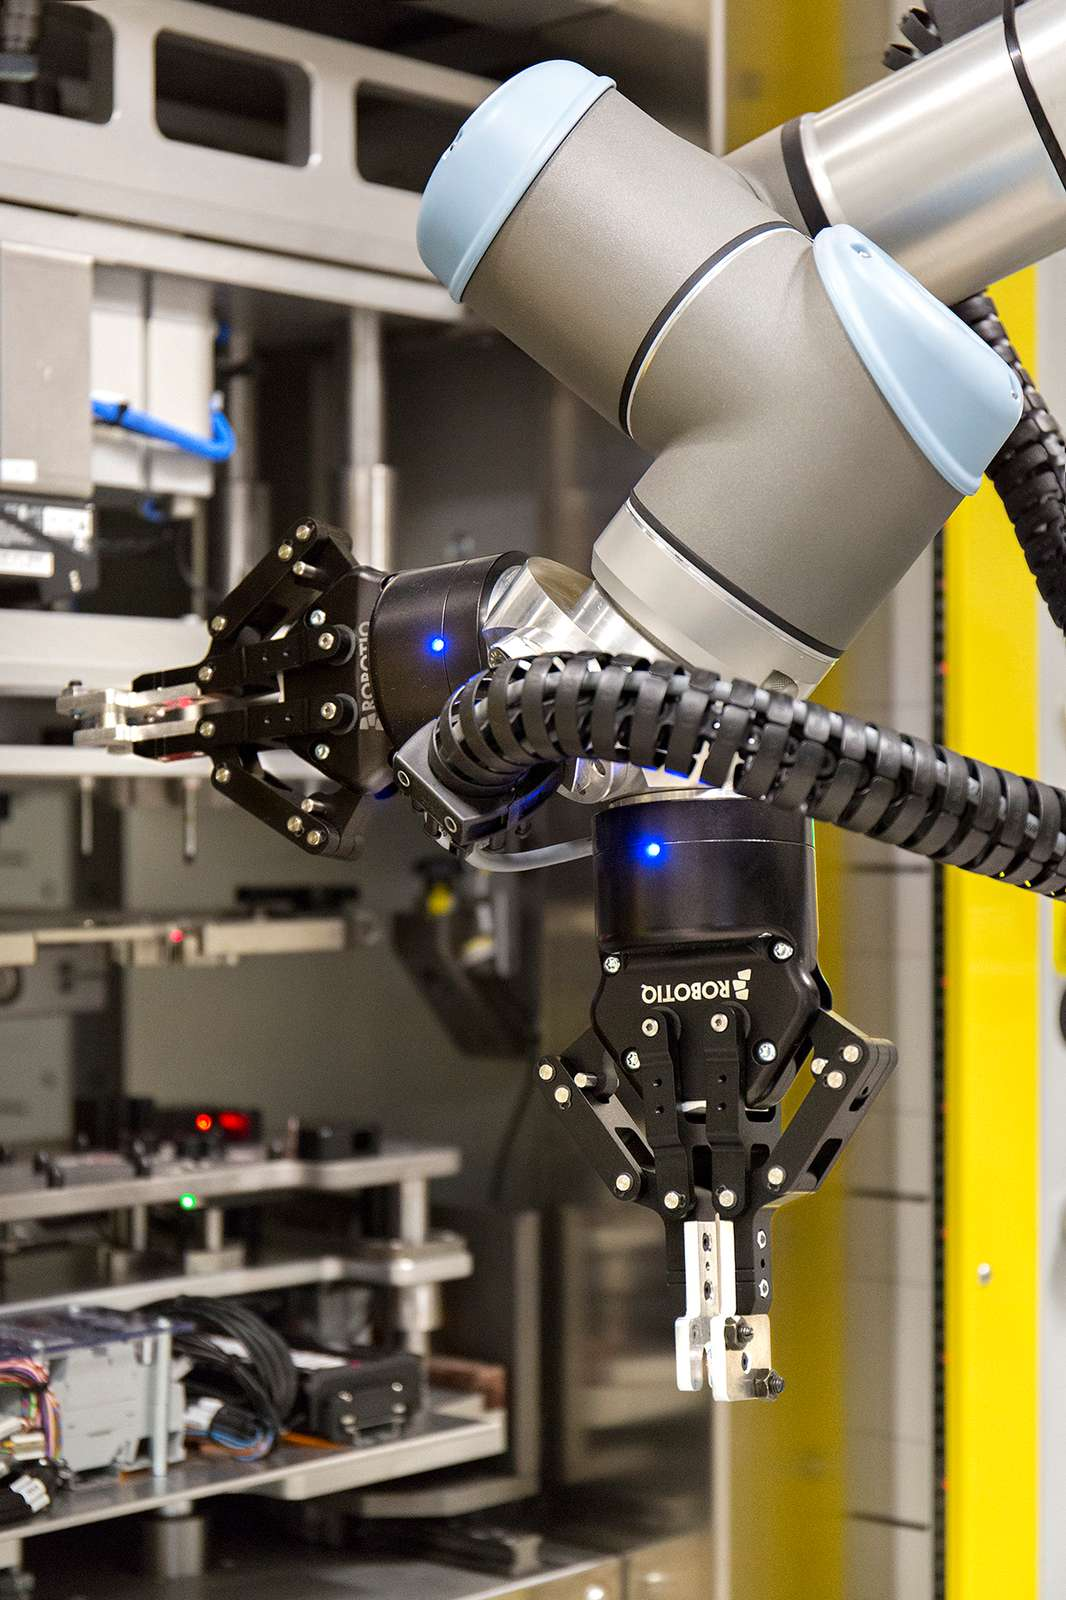 At Continental Automotive in Spain, UR robots equipped with dual grippers